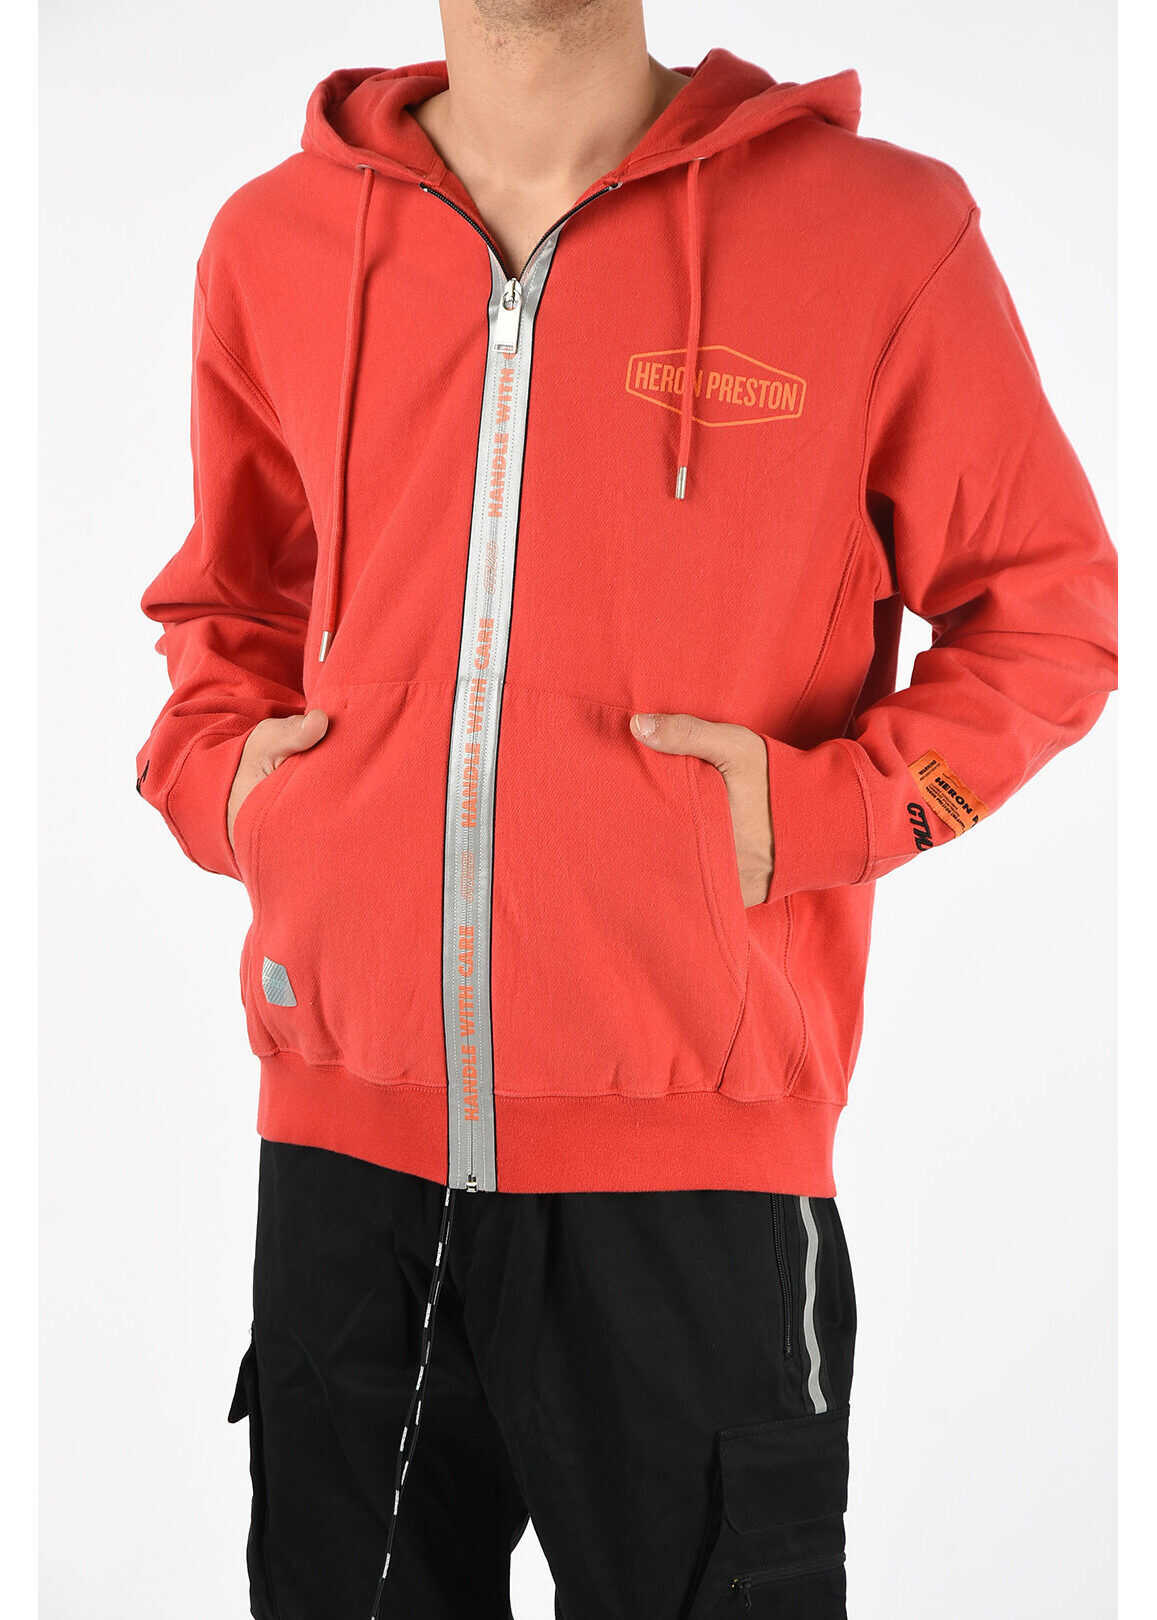 Heron Preston Full Zip Sweatshirt RED